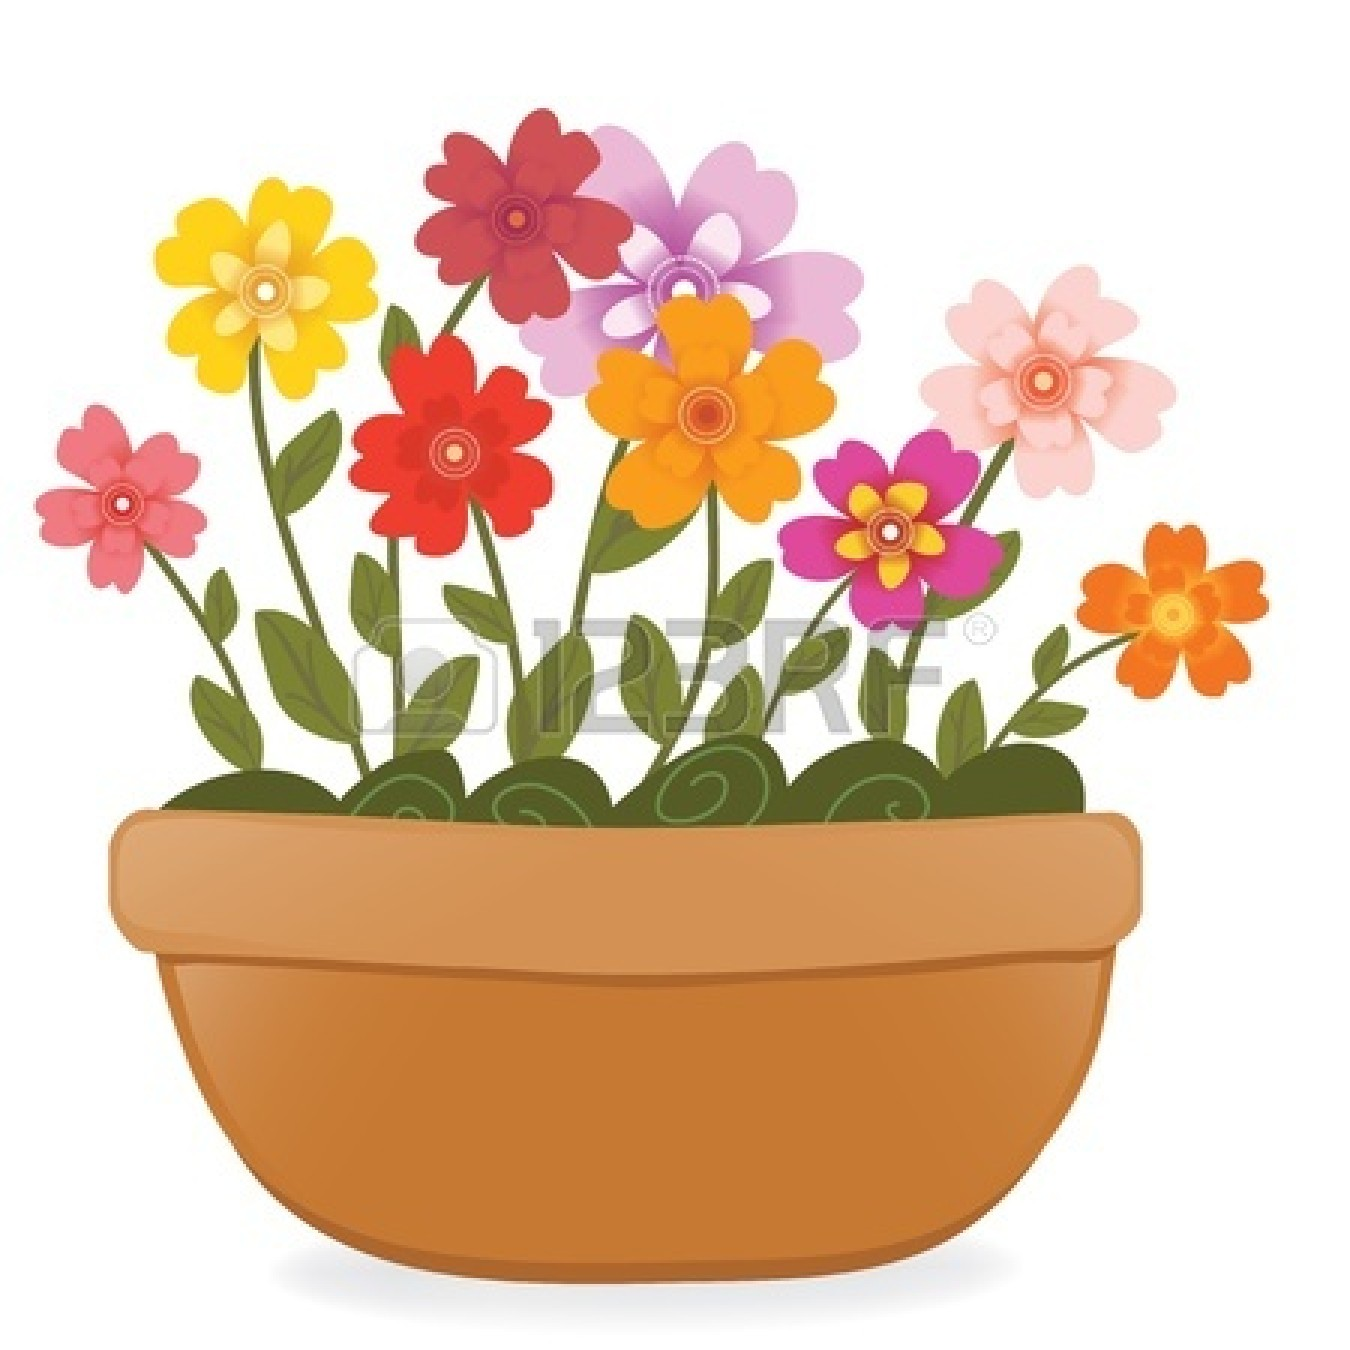 Red Flower clipart planter #11